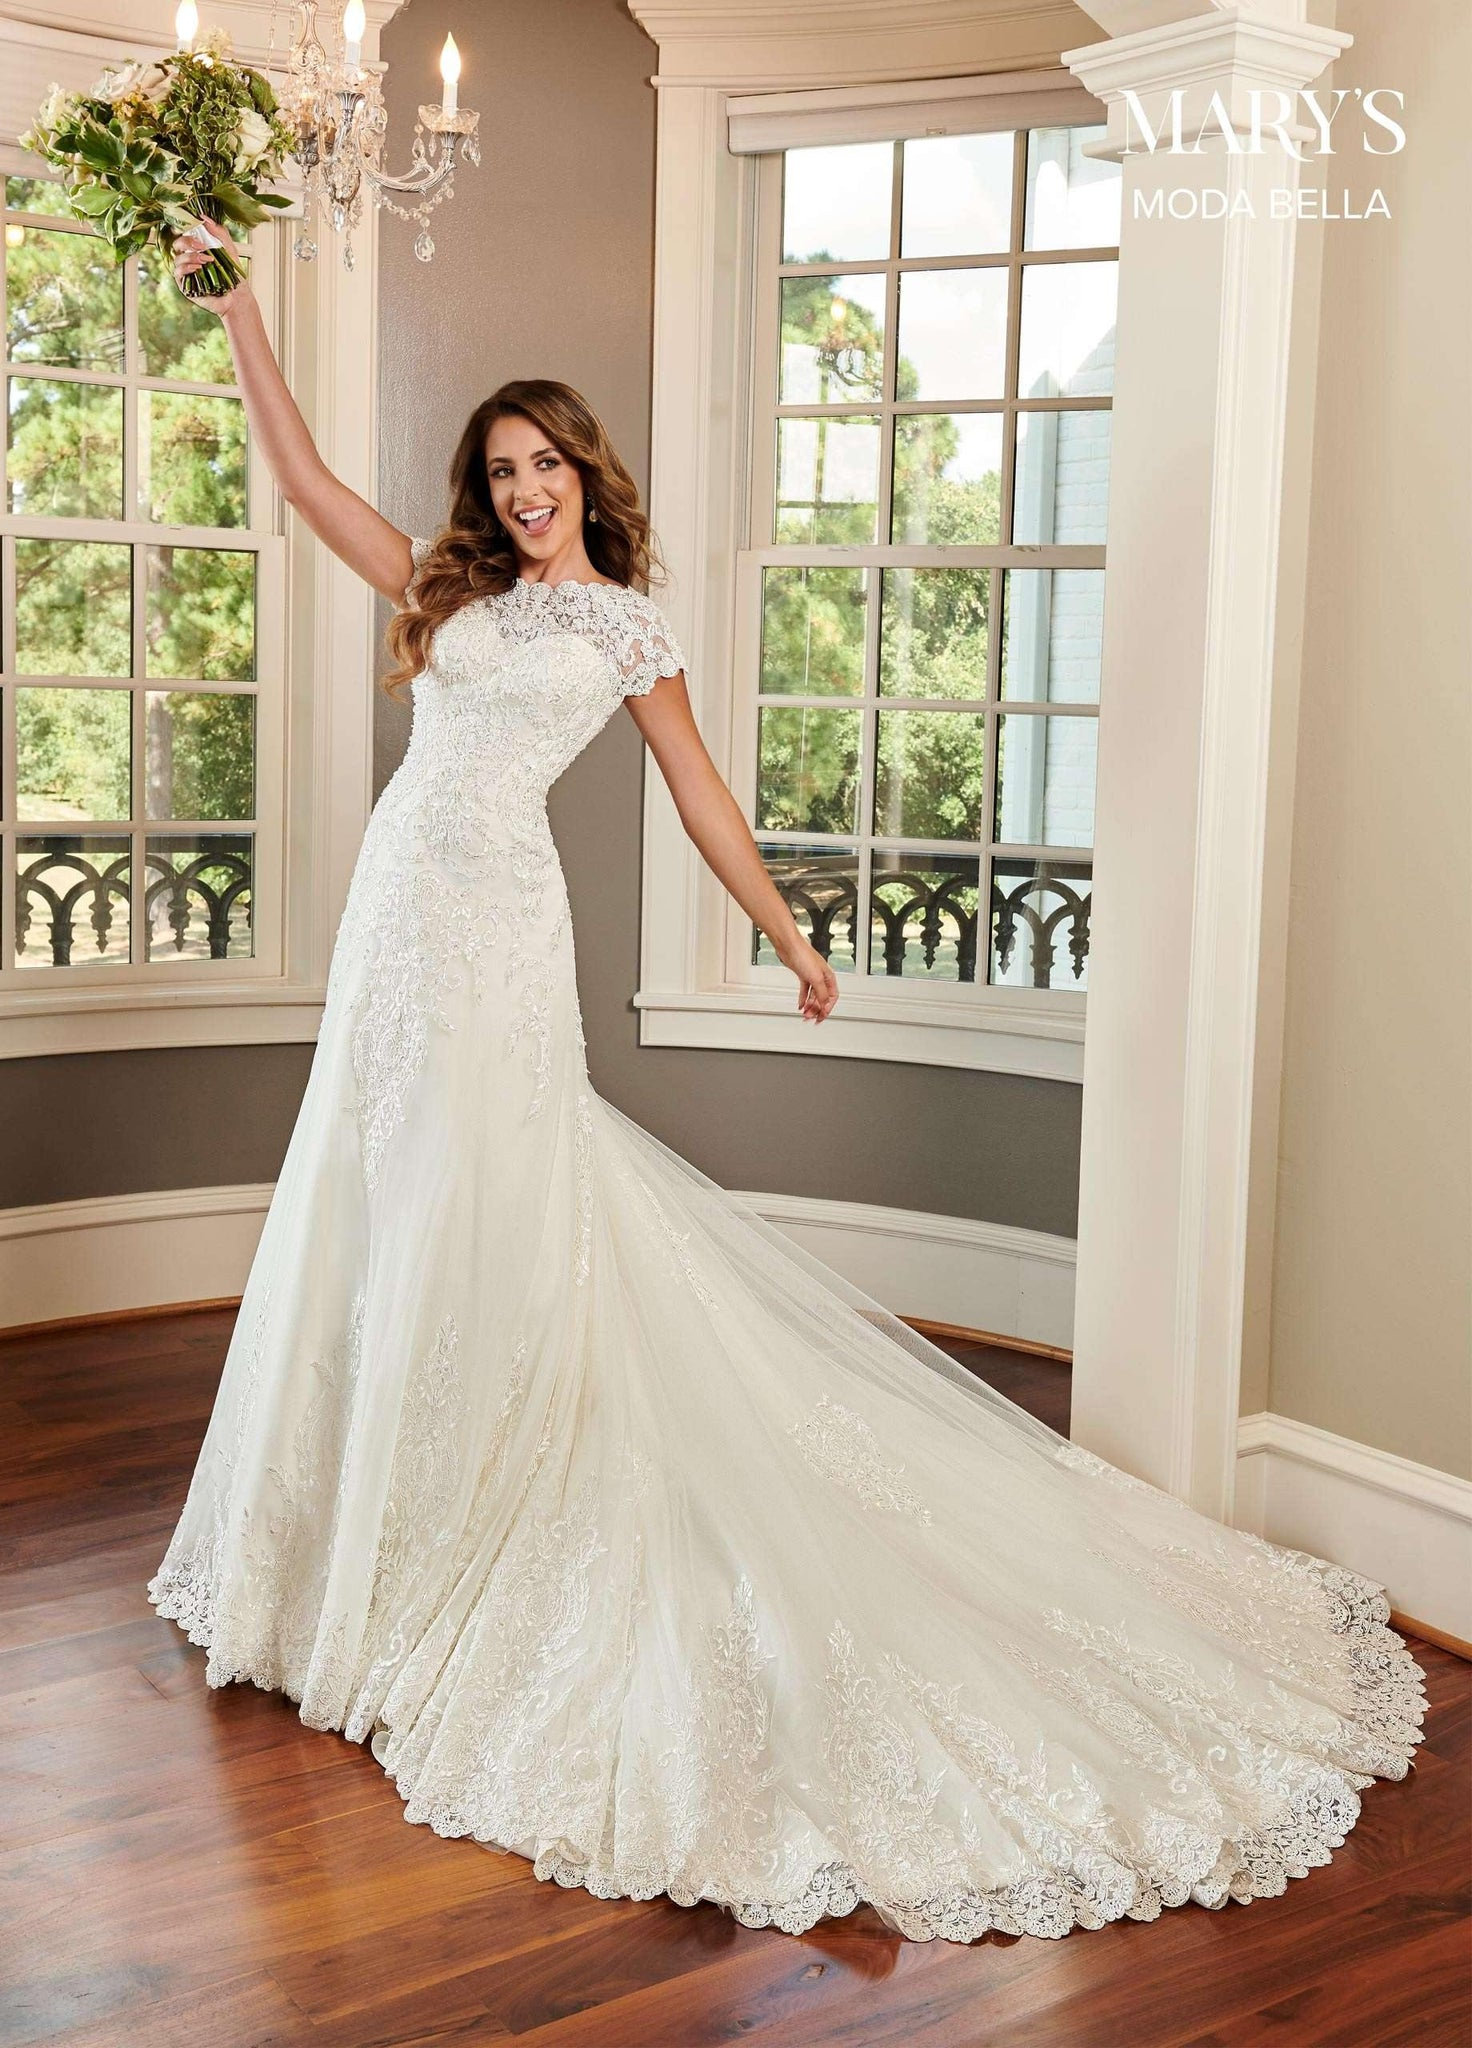 MARY'S BRIDAL - Bella - Adore Bridal and Occasion Wear